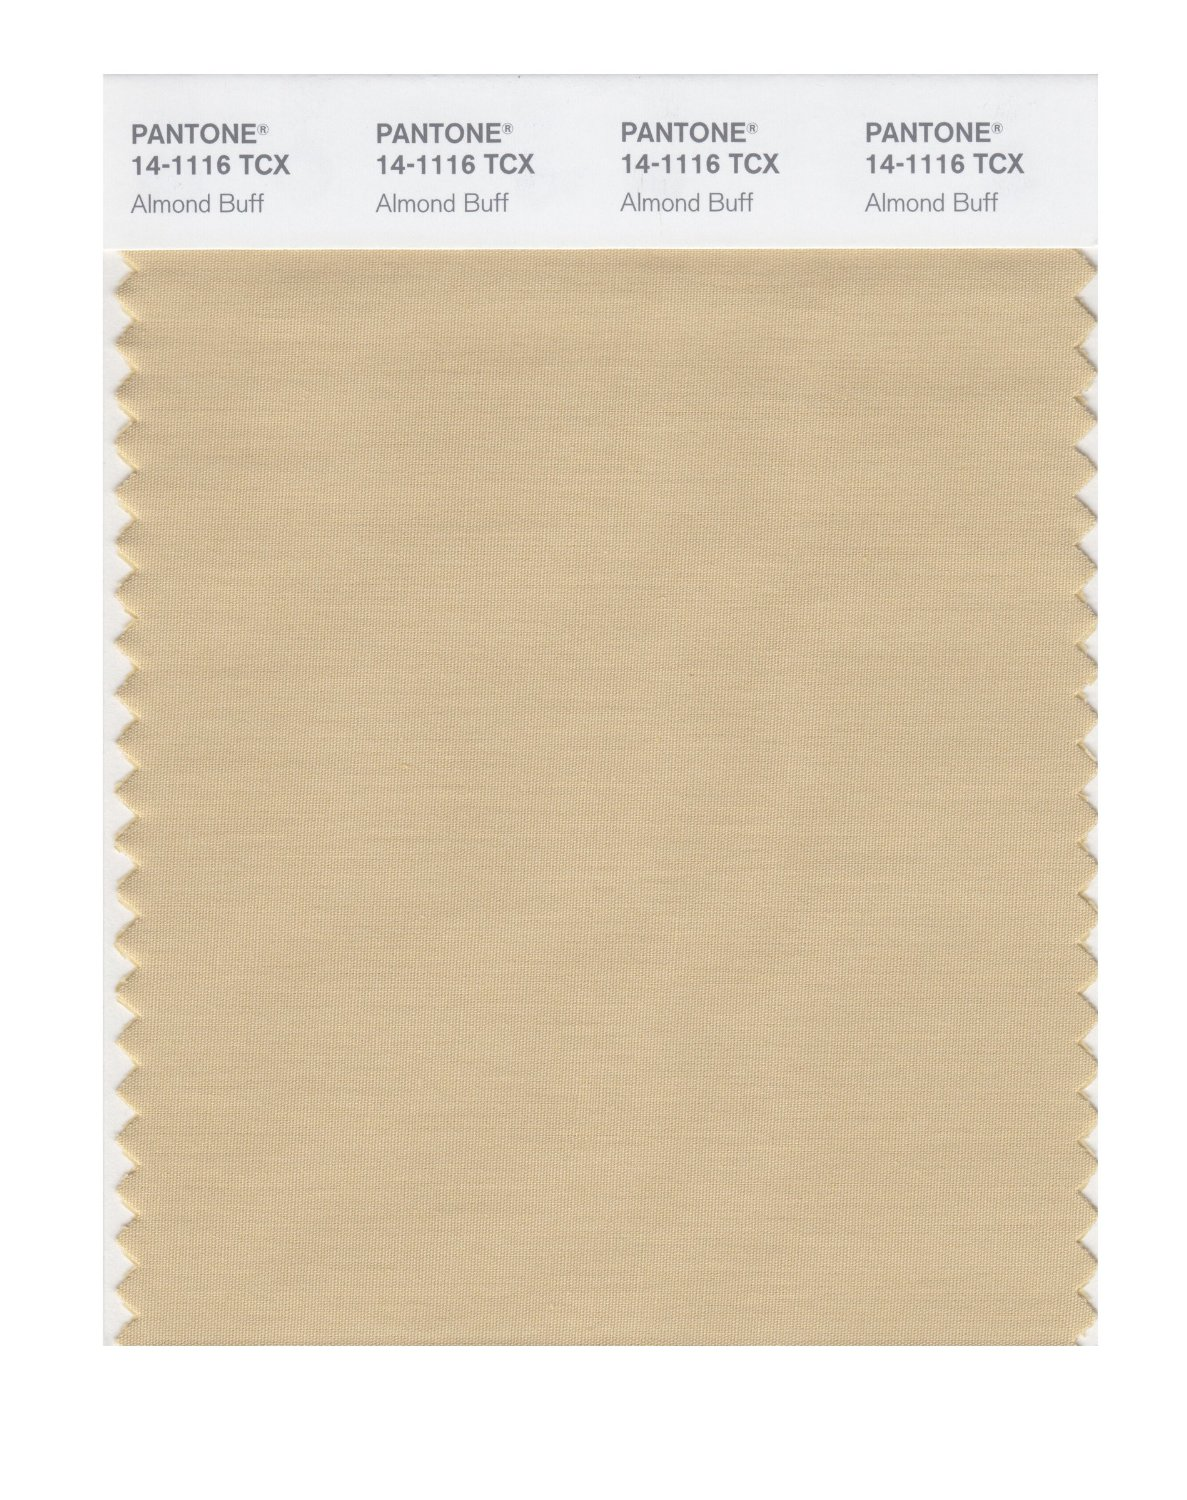 Pantone Smart Swatch 14-1116 Almond Buff